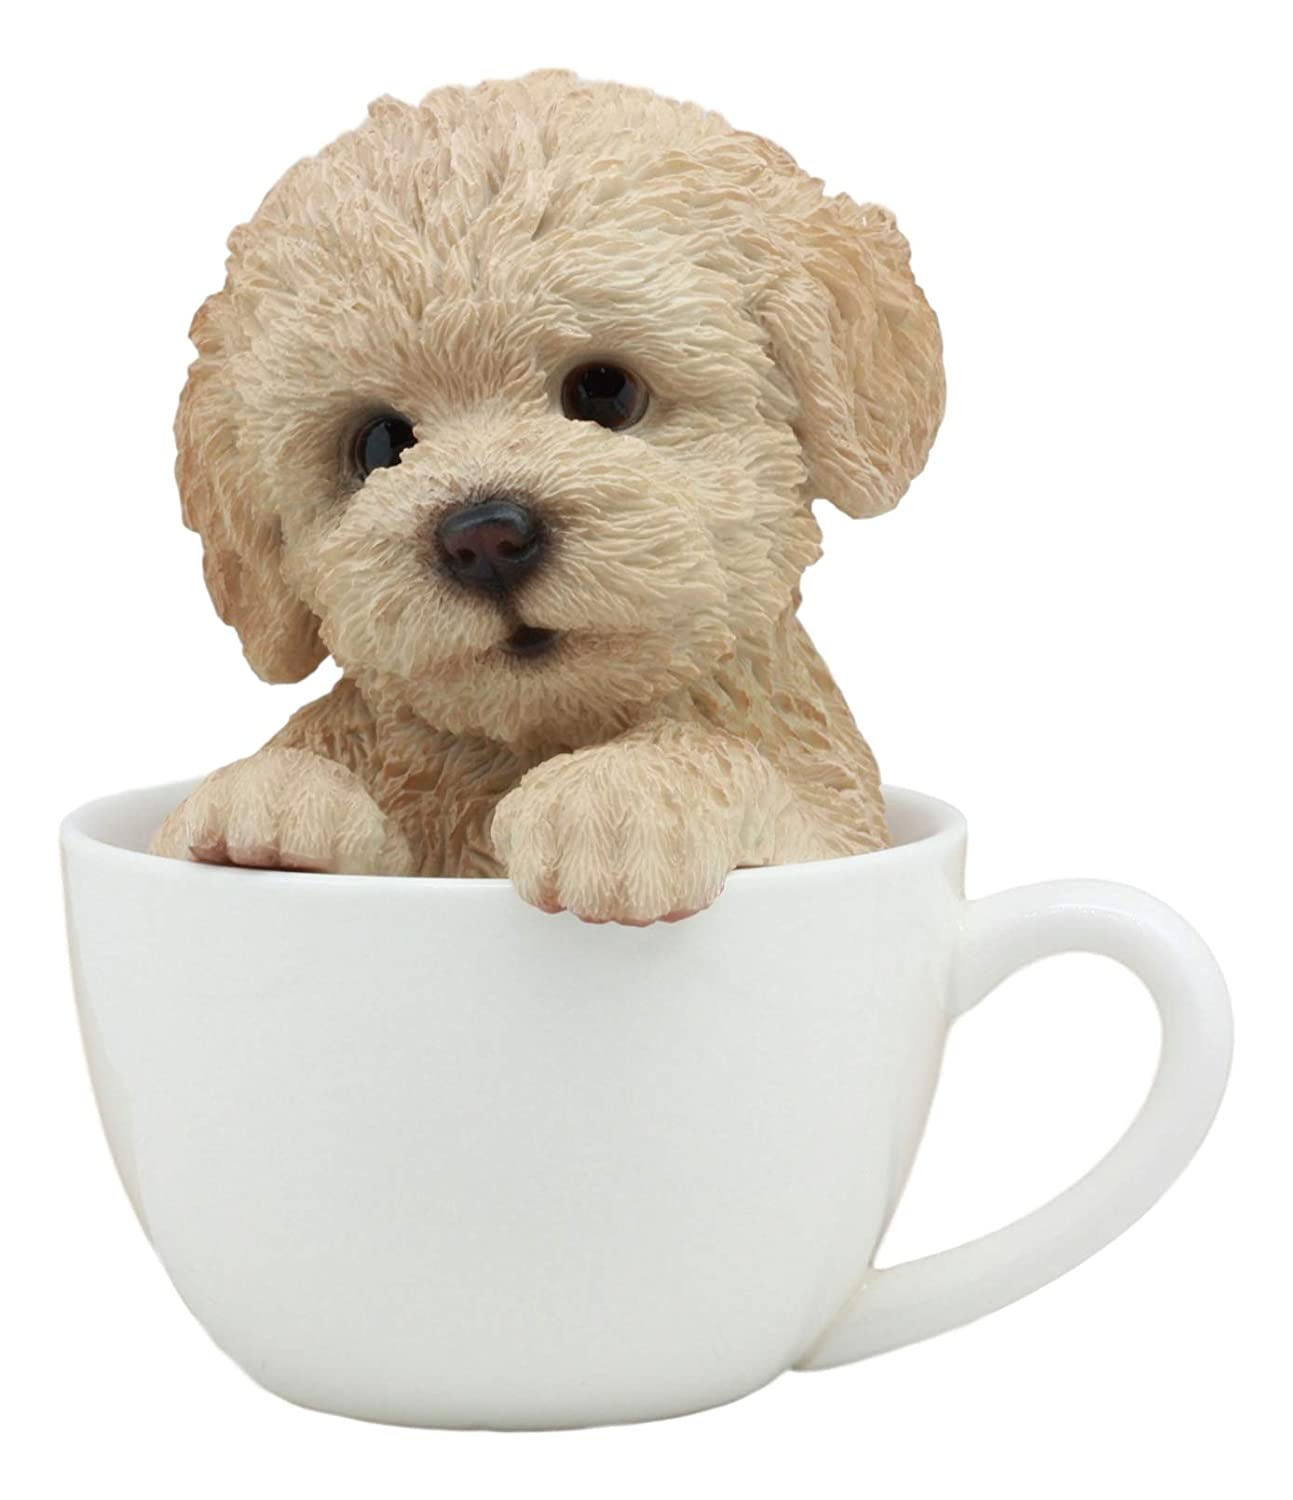 """Ebros Realistic Adorable Brown Poodle Dog Teacup Statue 6"""" Tall Pet Pal Dog Breed Collectible Resin Decor Figurine with Glass Eyes"""